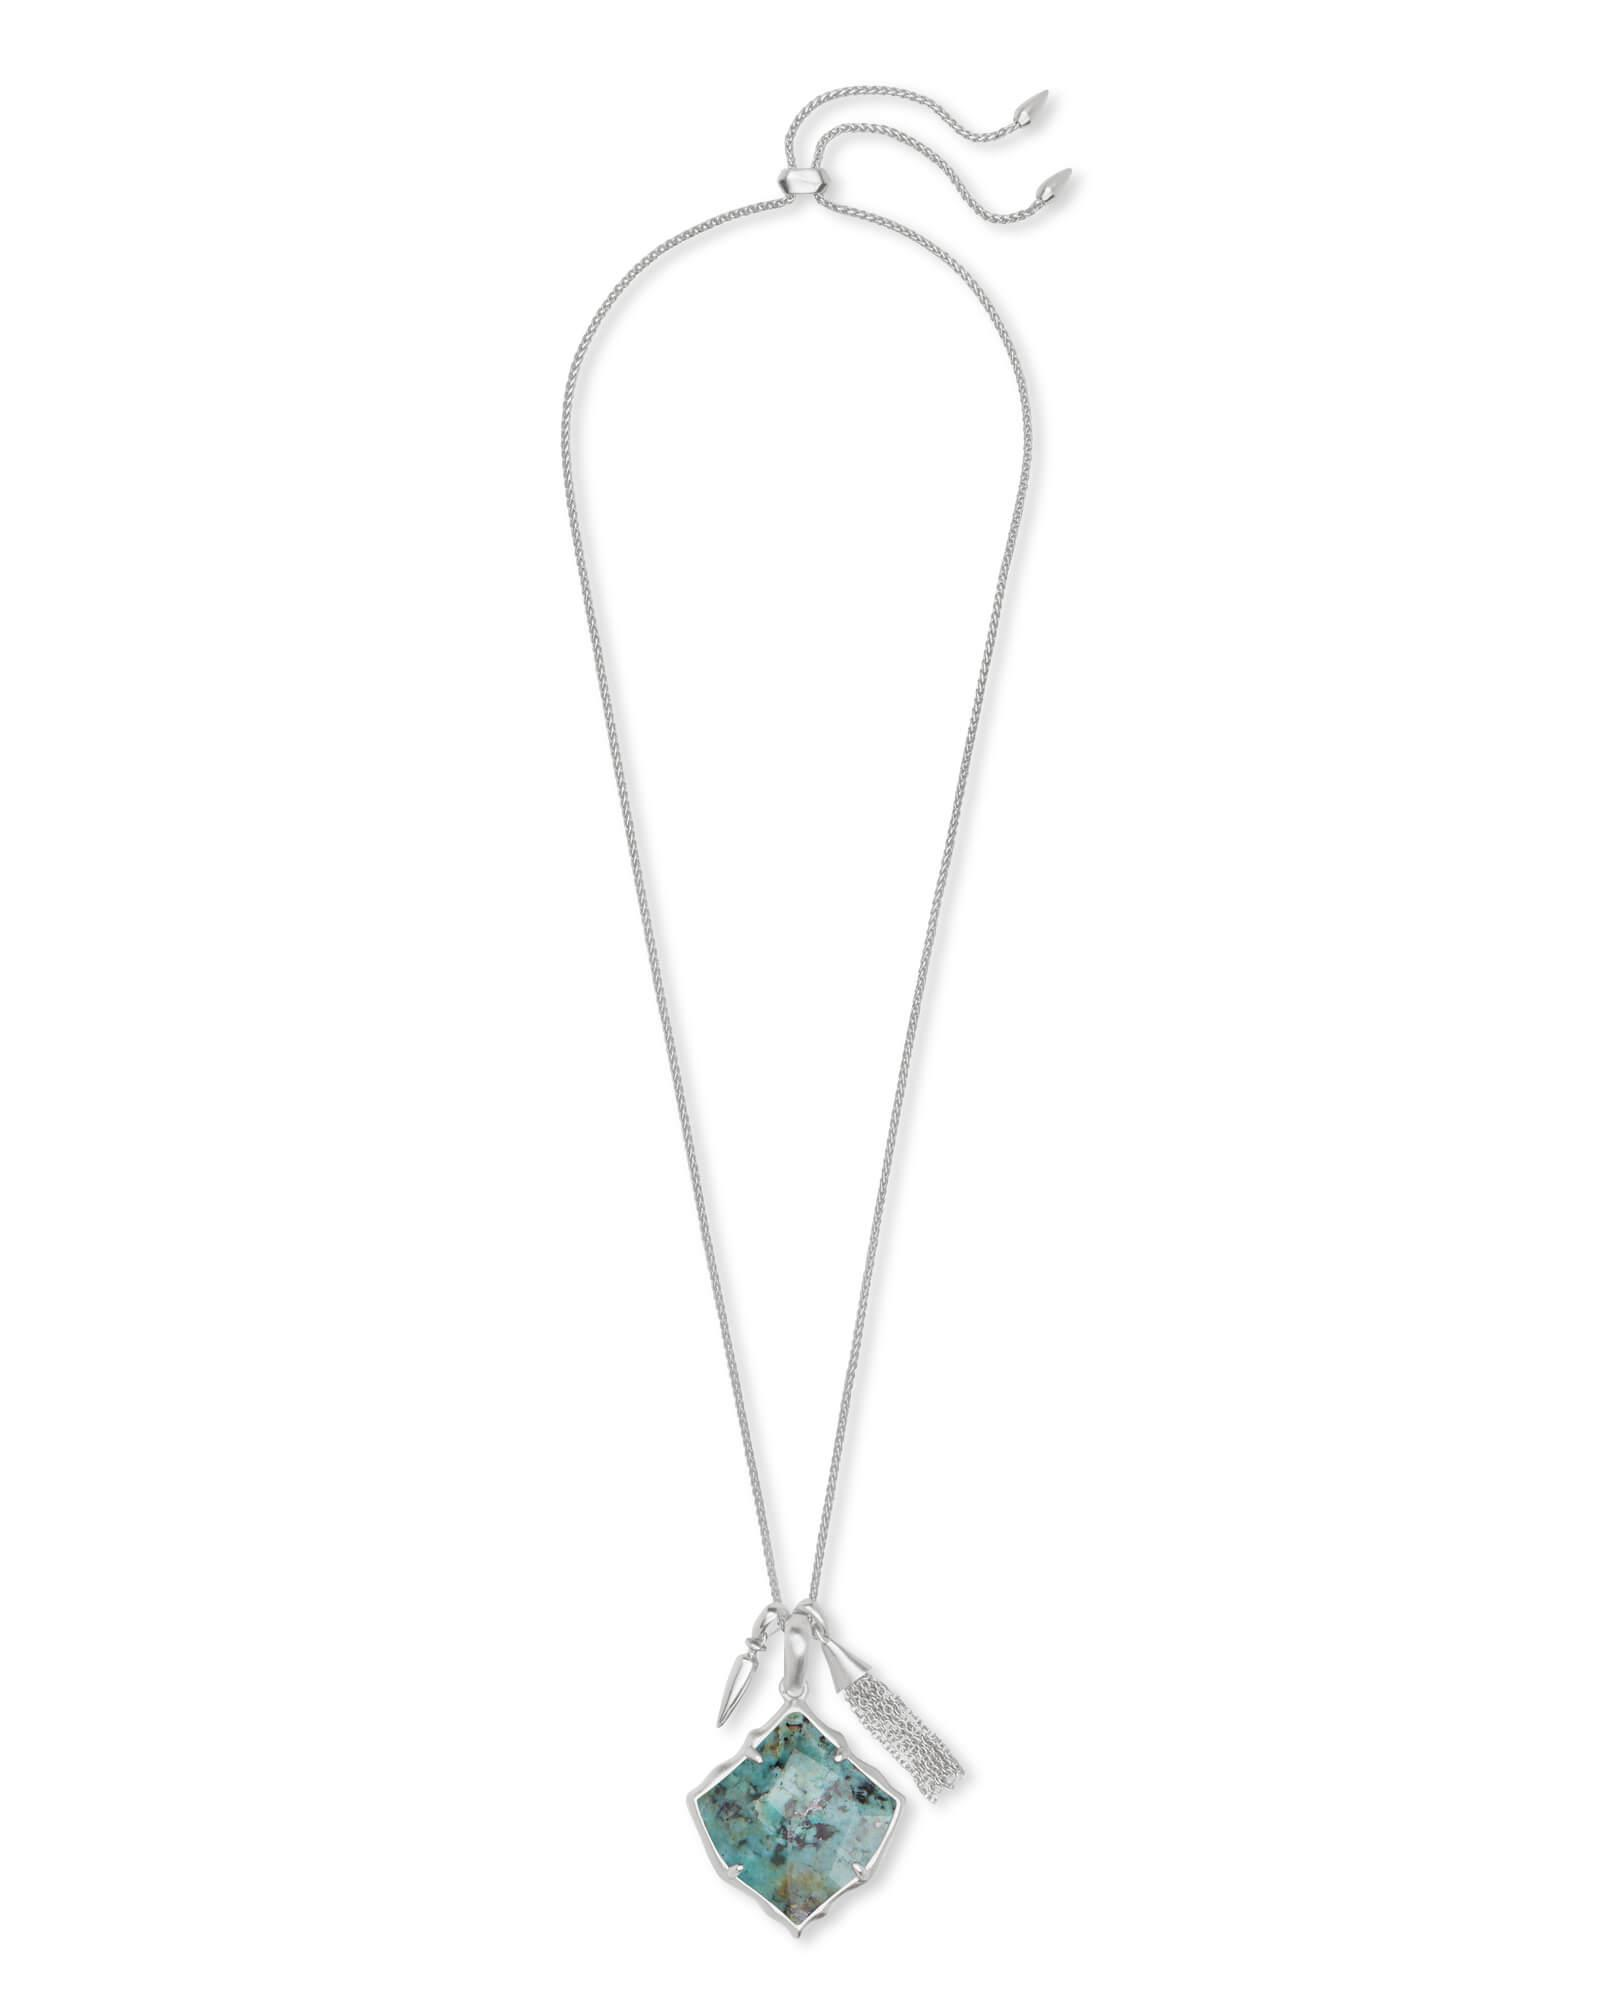 eef283771 Kendra Scott Arlet Silver Pendant Necklace In African Turquoise in ...